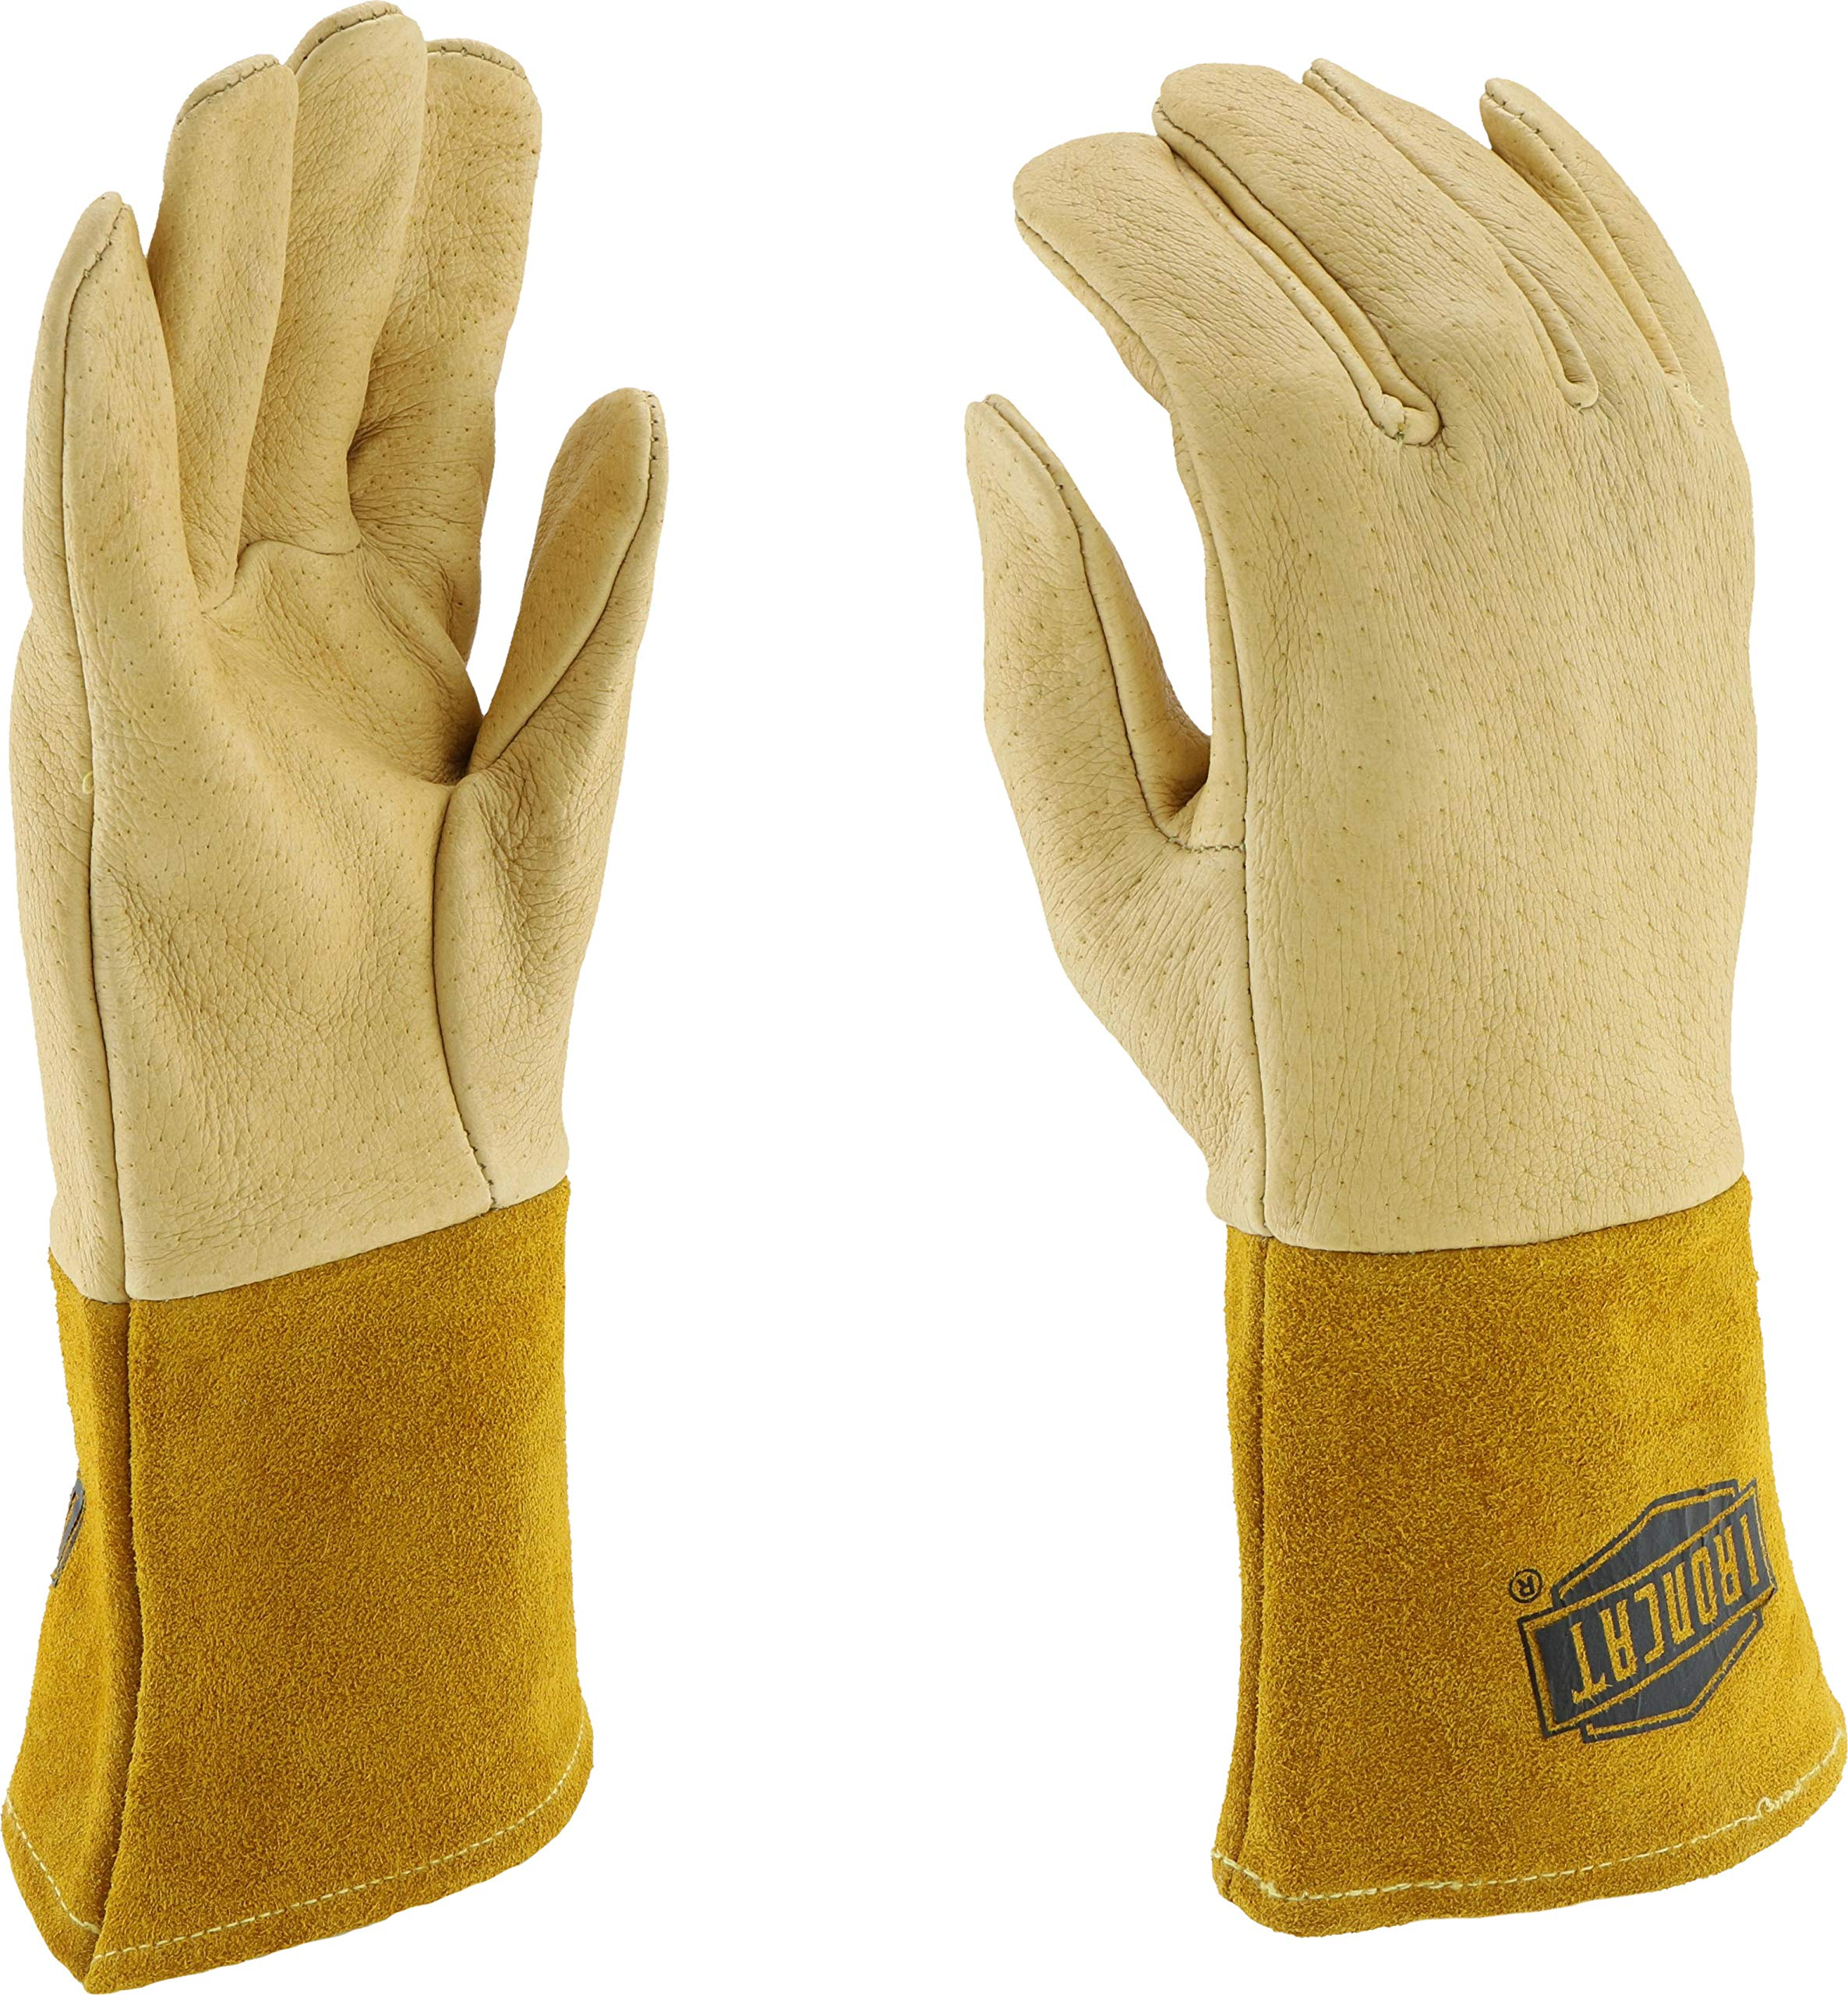 West Chester 6021 Grain Pigskin Leather Heavyweight Top MIG Welding Glove with 4'' Split Cowhide Cuff, Work, 0.9mm Thick, Small, Natural (Pack of 1 Pair)